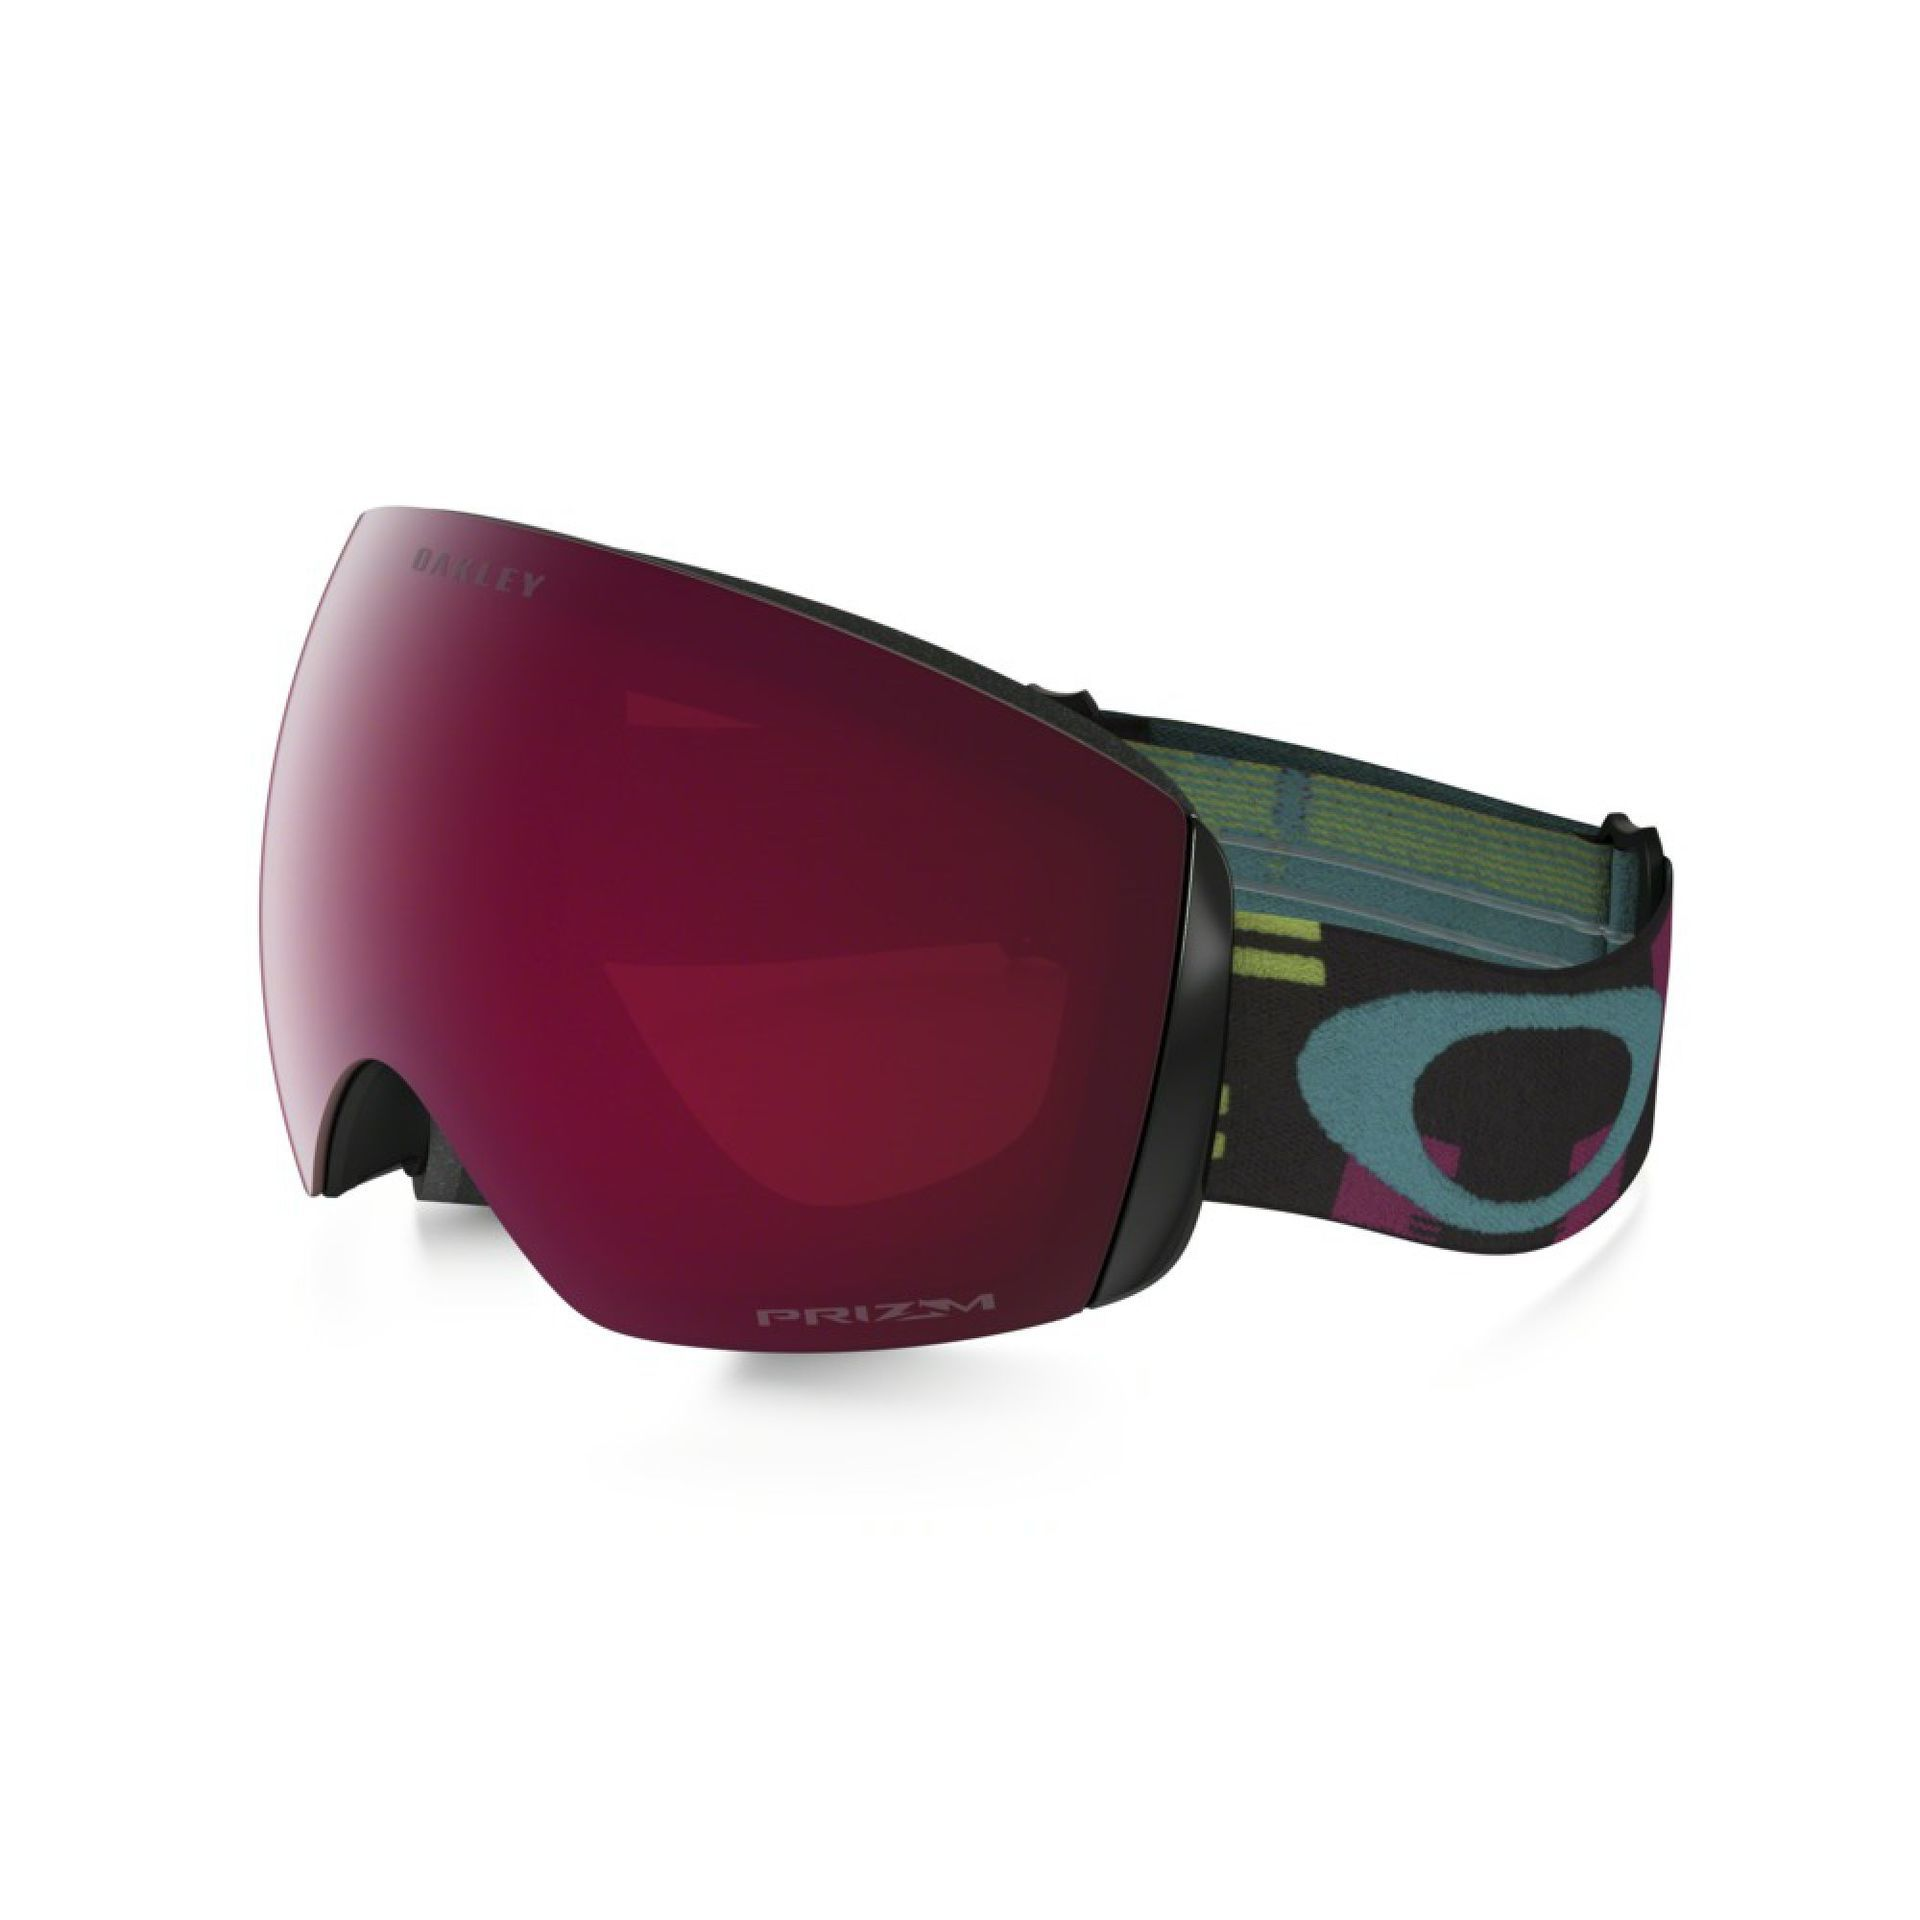 GOGLE OAKLEY FLIGHT DECK XM DISRUPTIVE NEON PRIZM ROSE